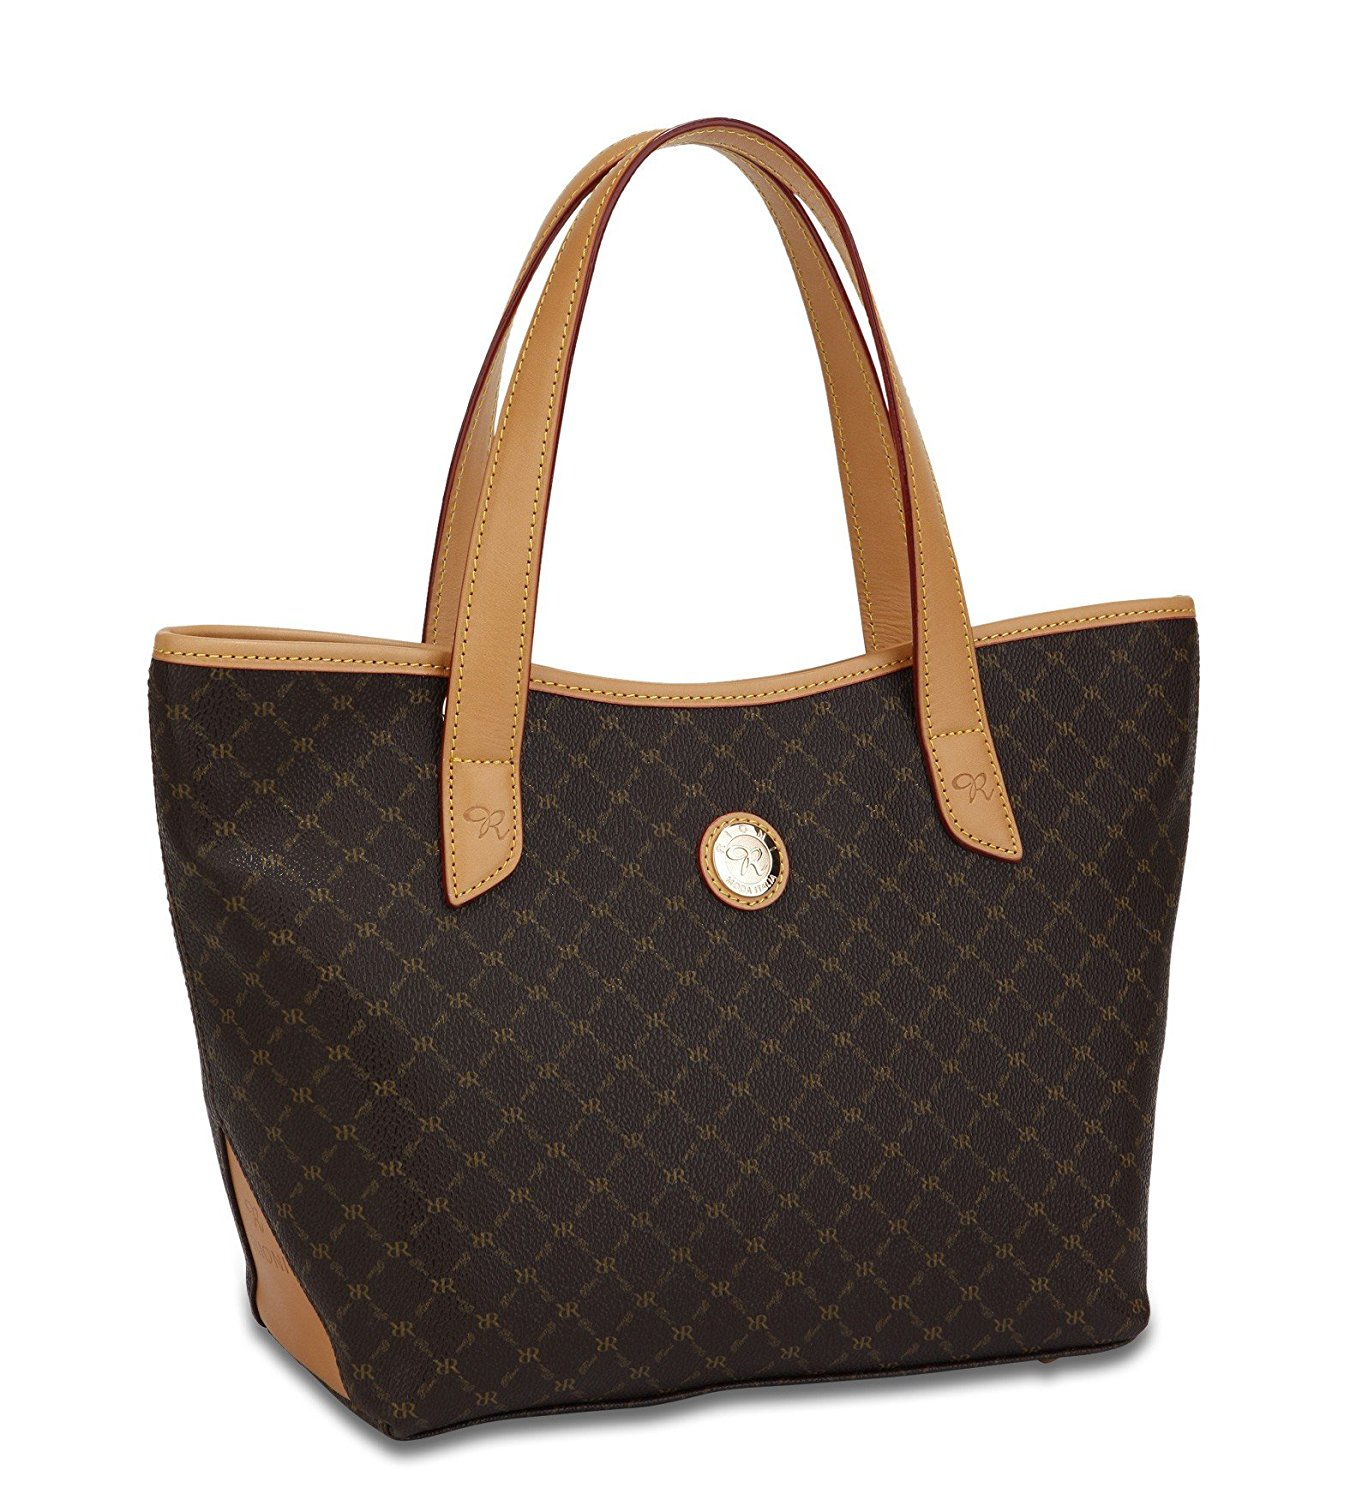 Buy Signature 360 Medium Luggage by Rioni Designer Handbags  amp ... 09a46cb4d263a